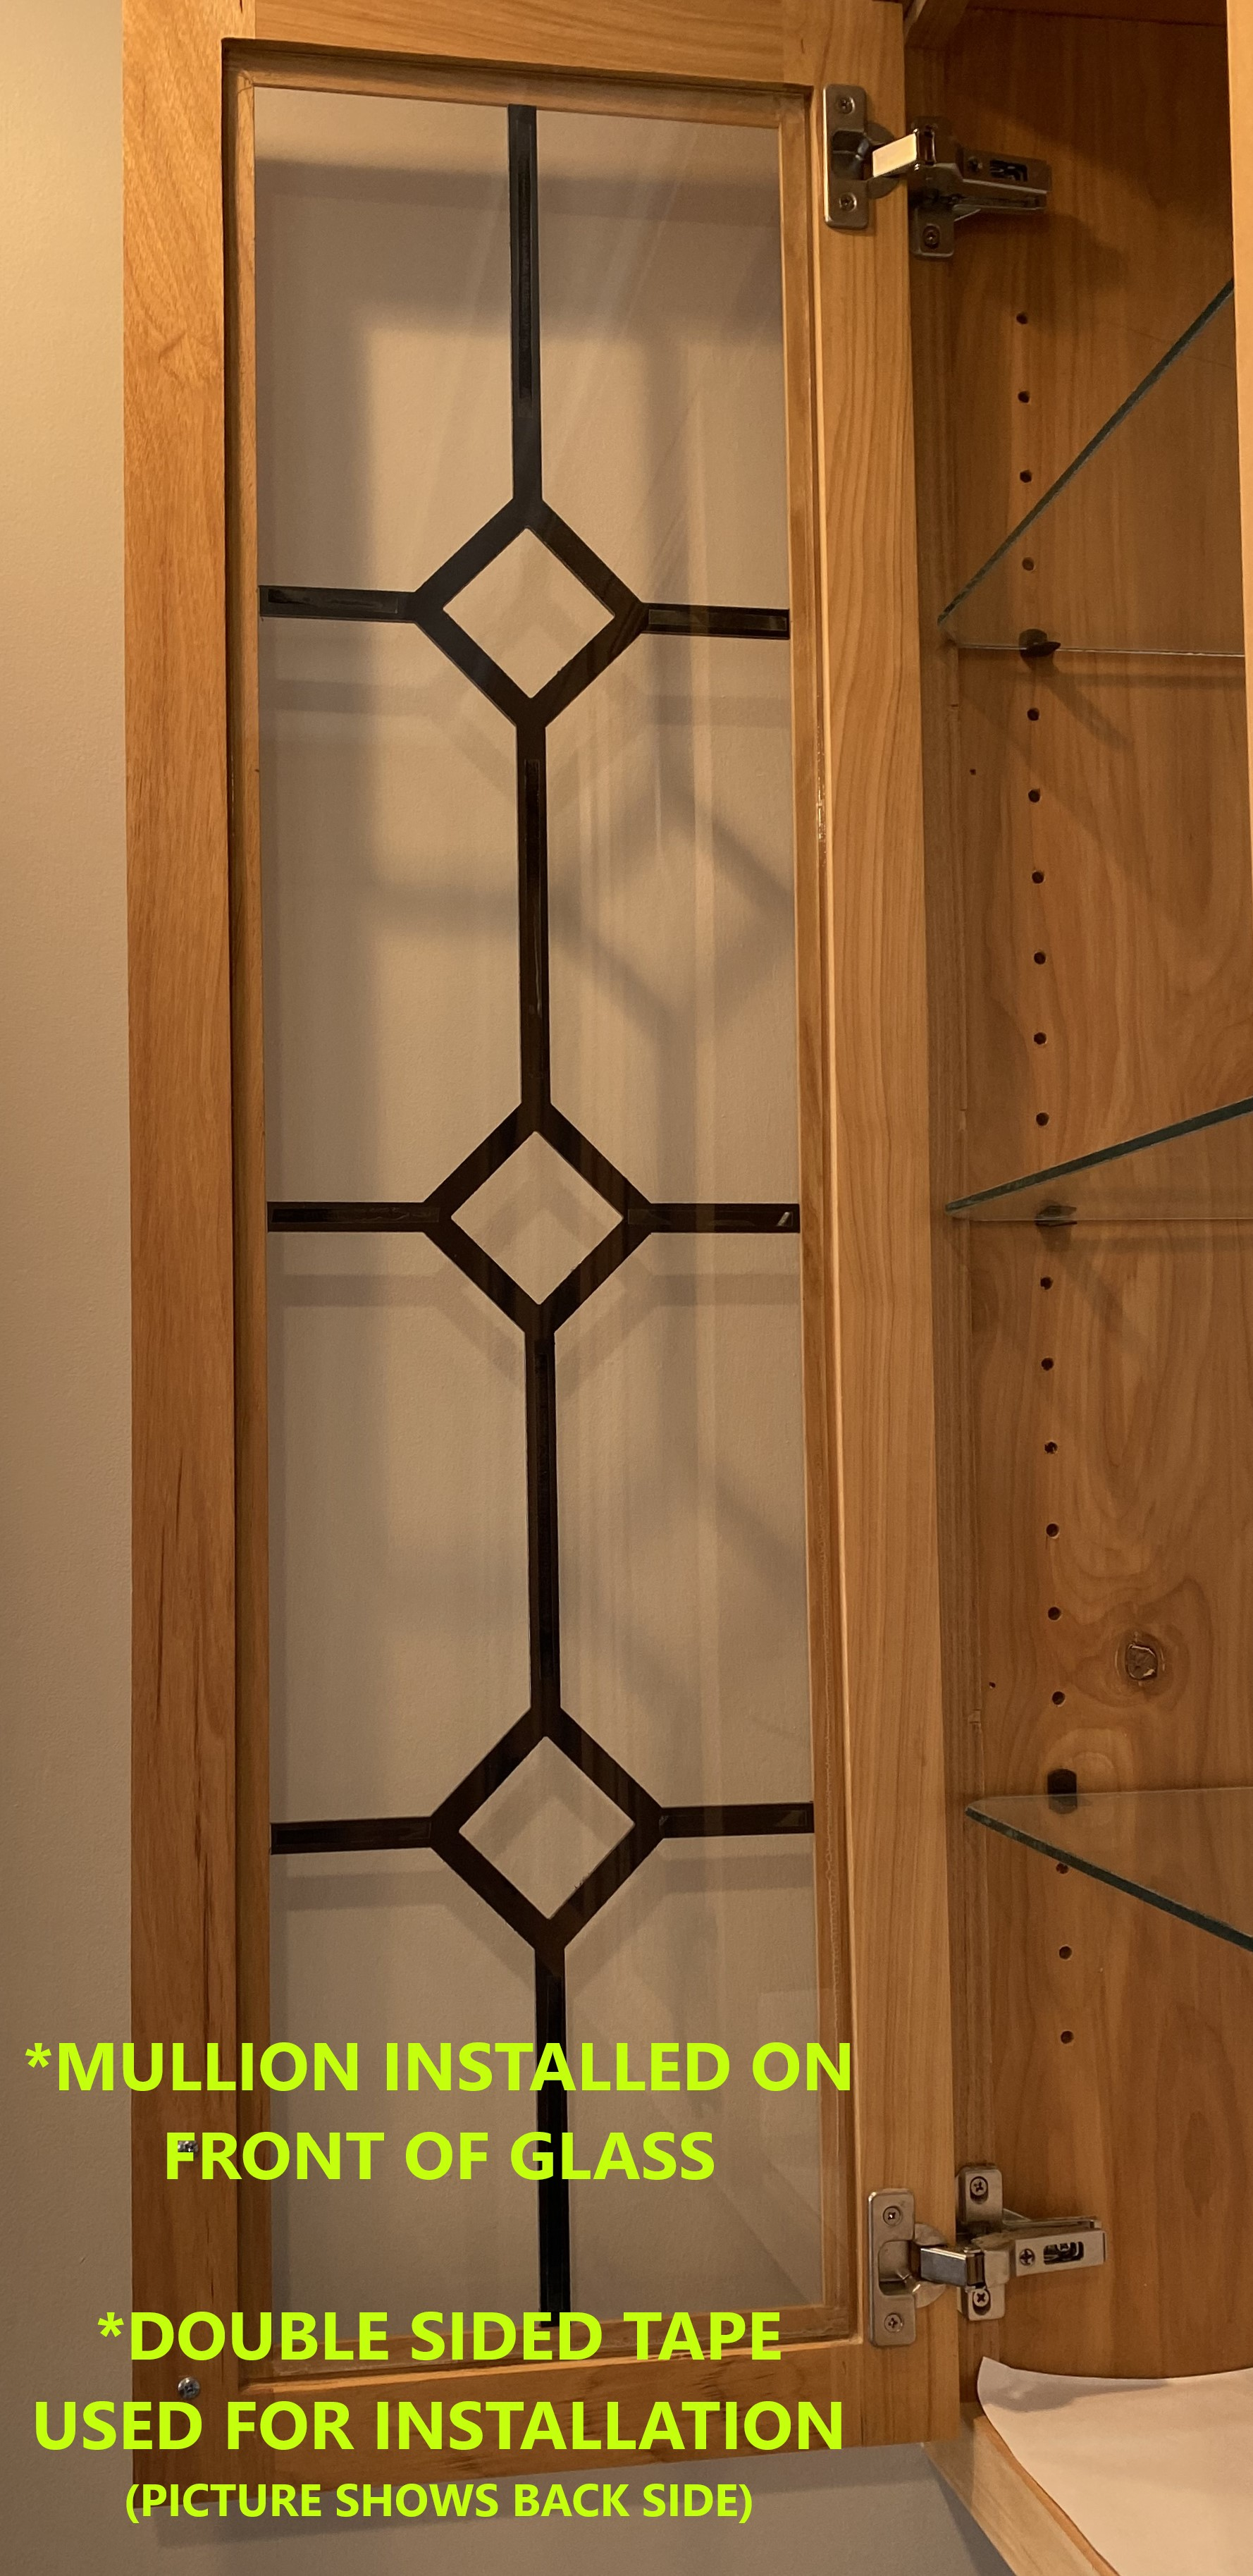 OPEN CABINET - INSTALLED WITH DOUBLE SIDED TAPE